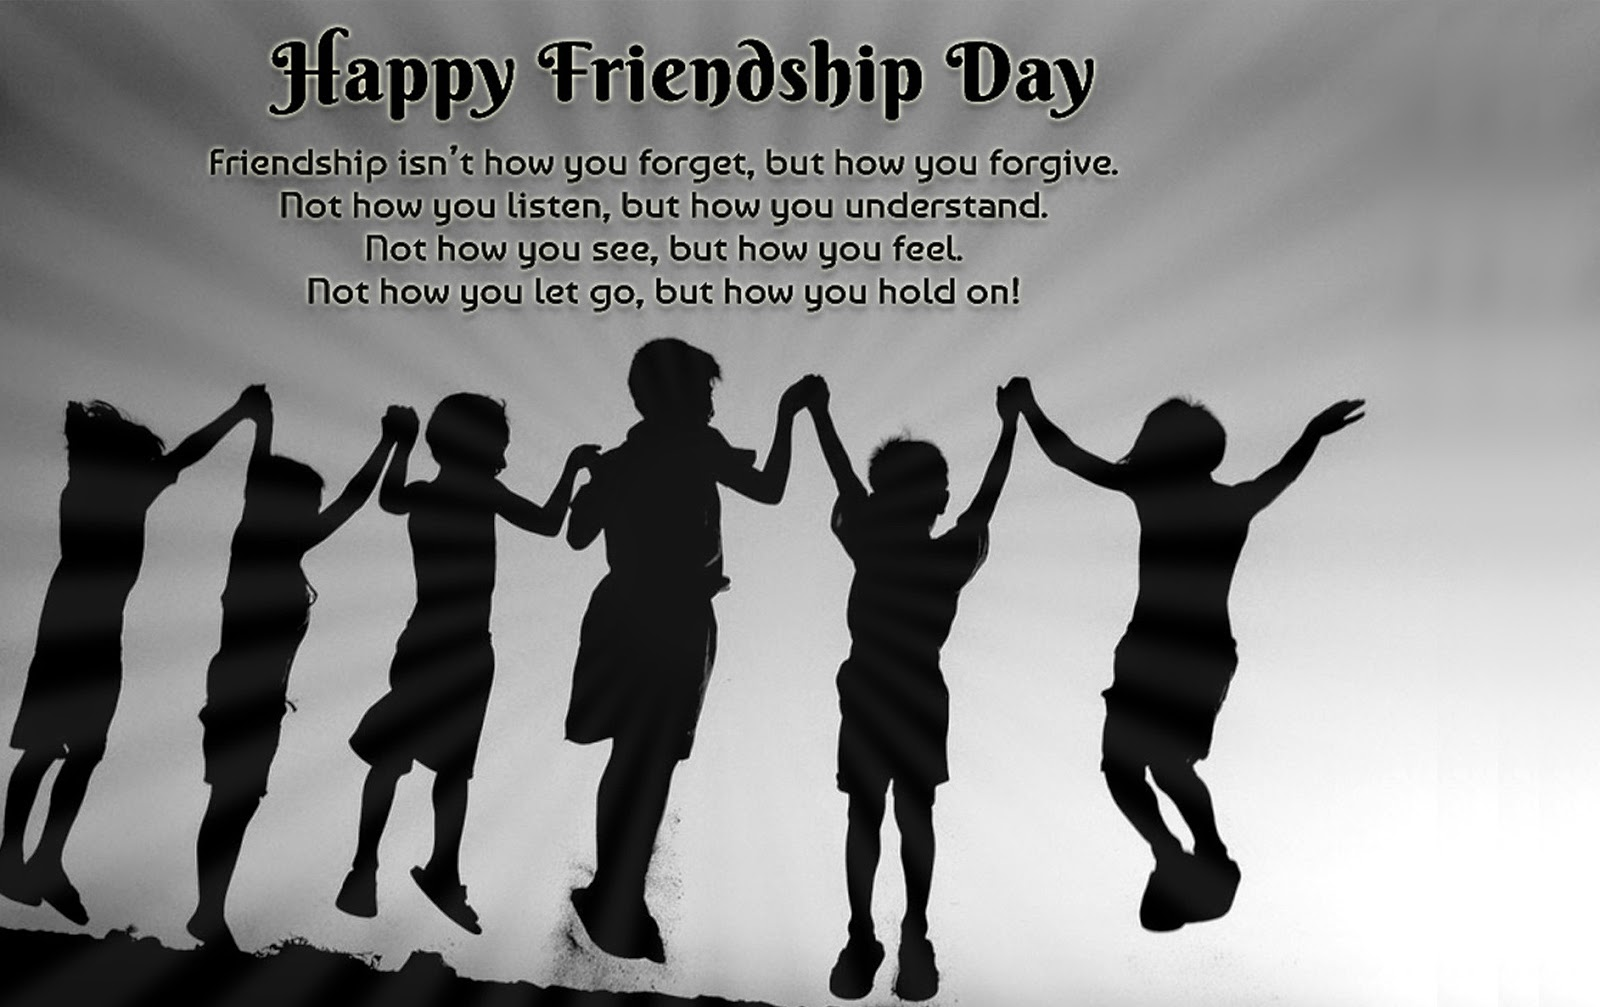 Friendshipday+quotes